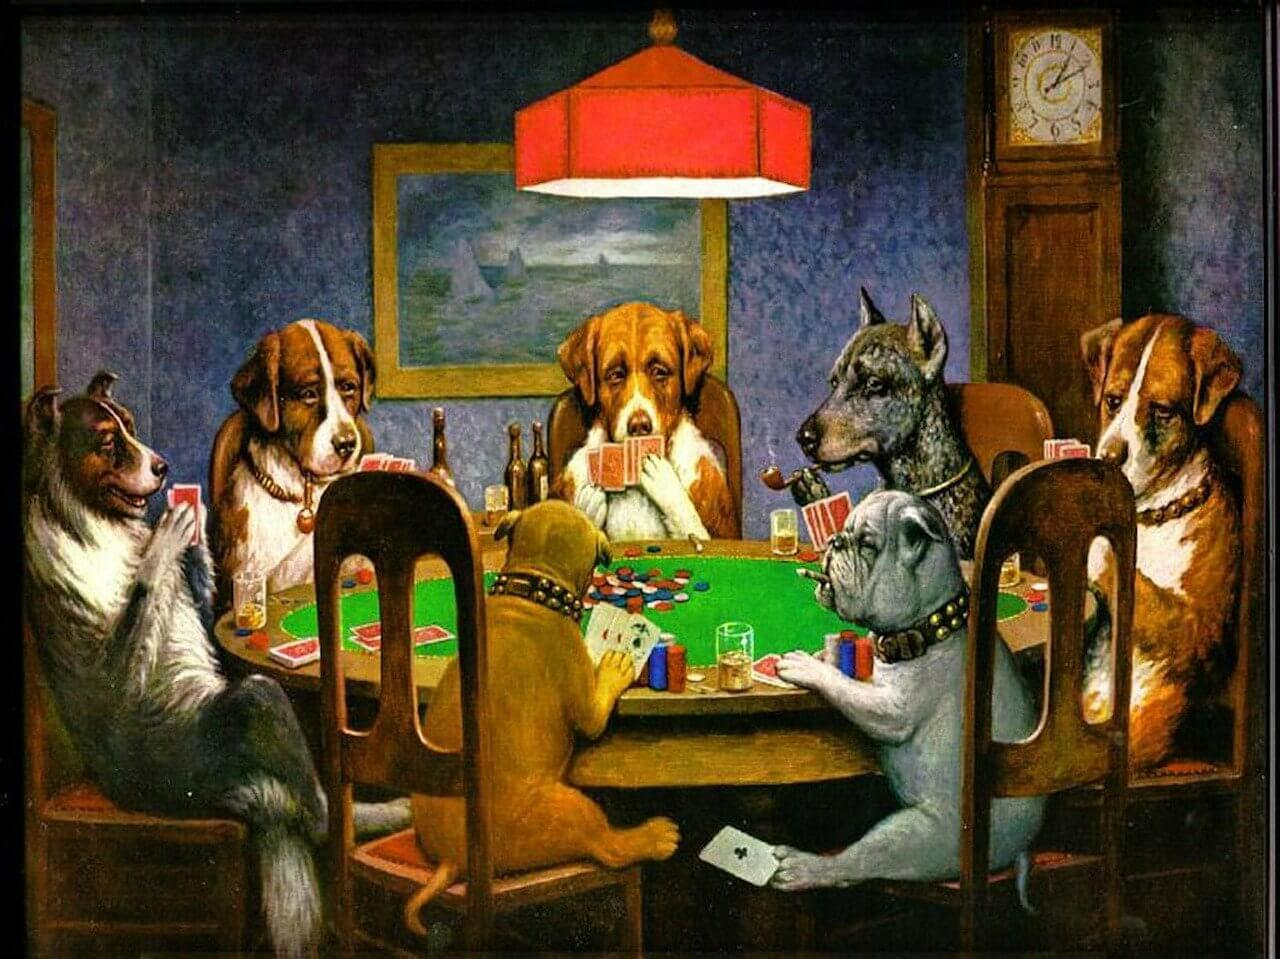 poker dogs cheating image